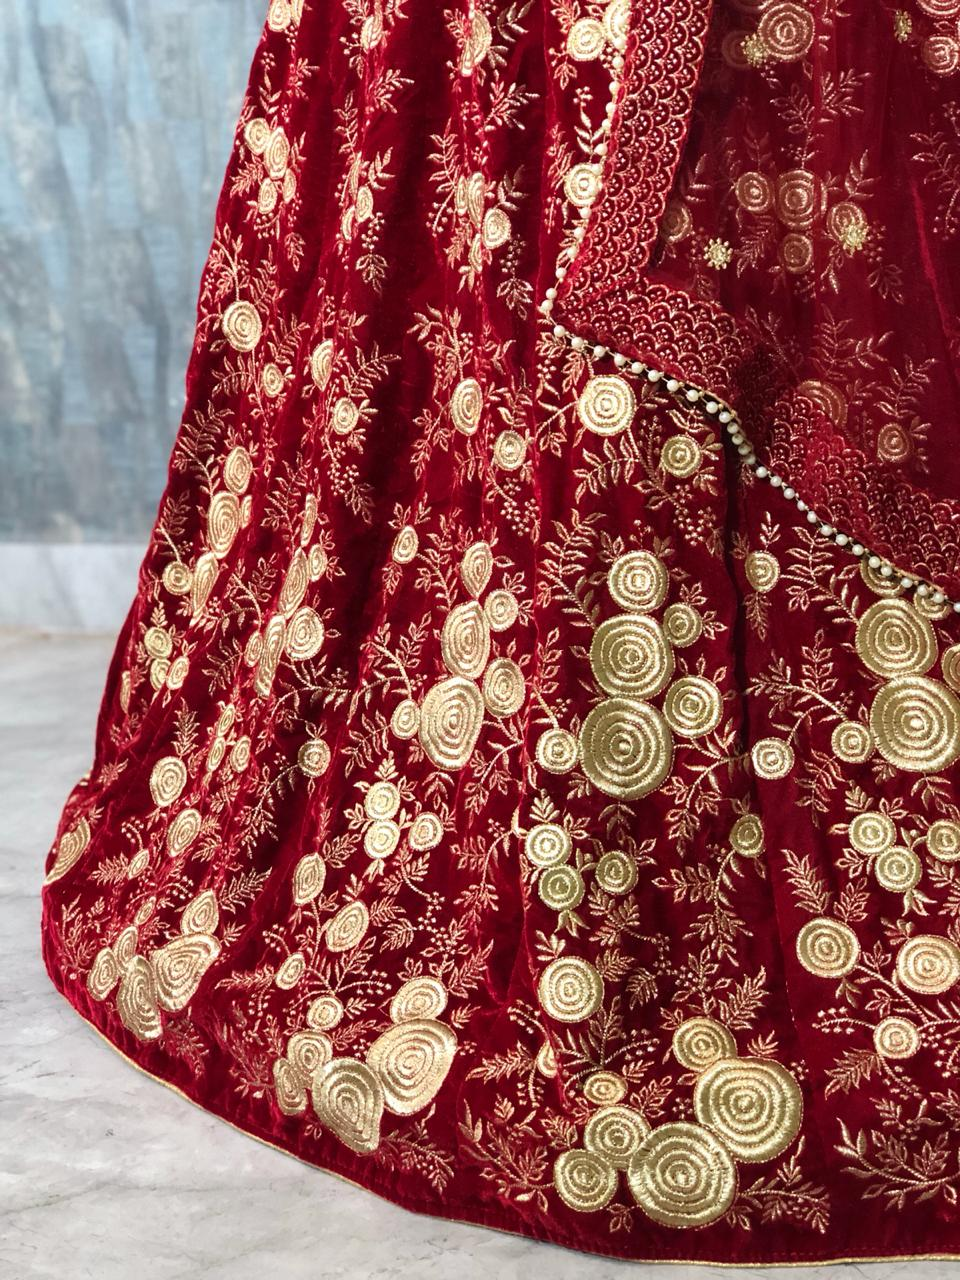 Bridal Wear Red Colour Original 9000 Micro Velvet Lehenga Choli Rj Fashion